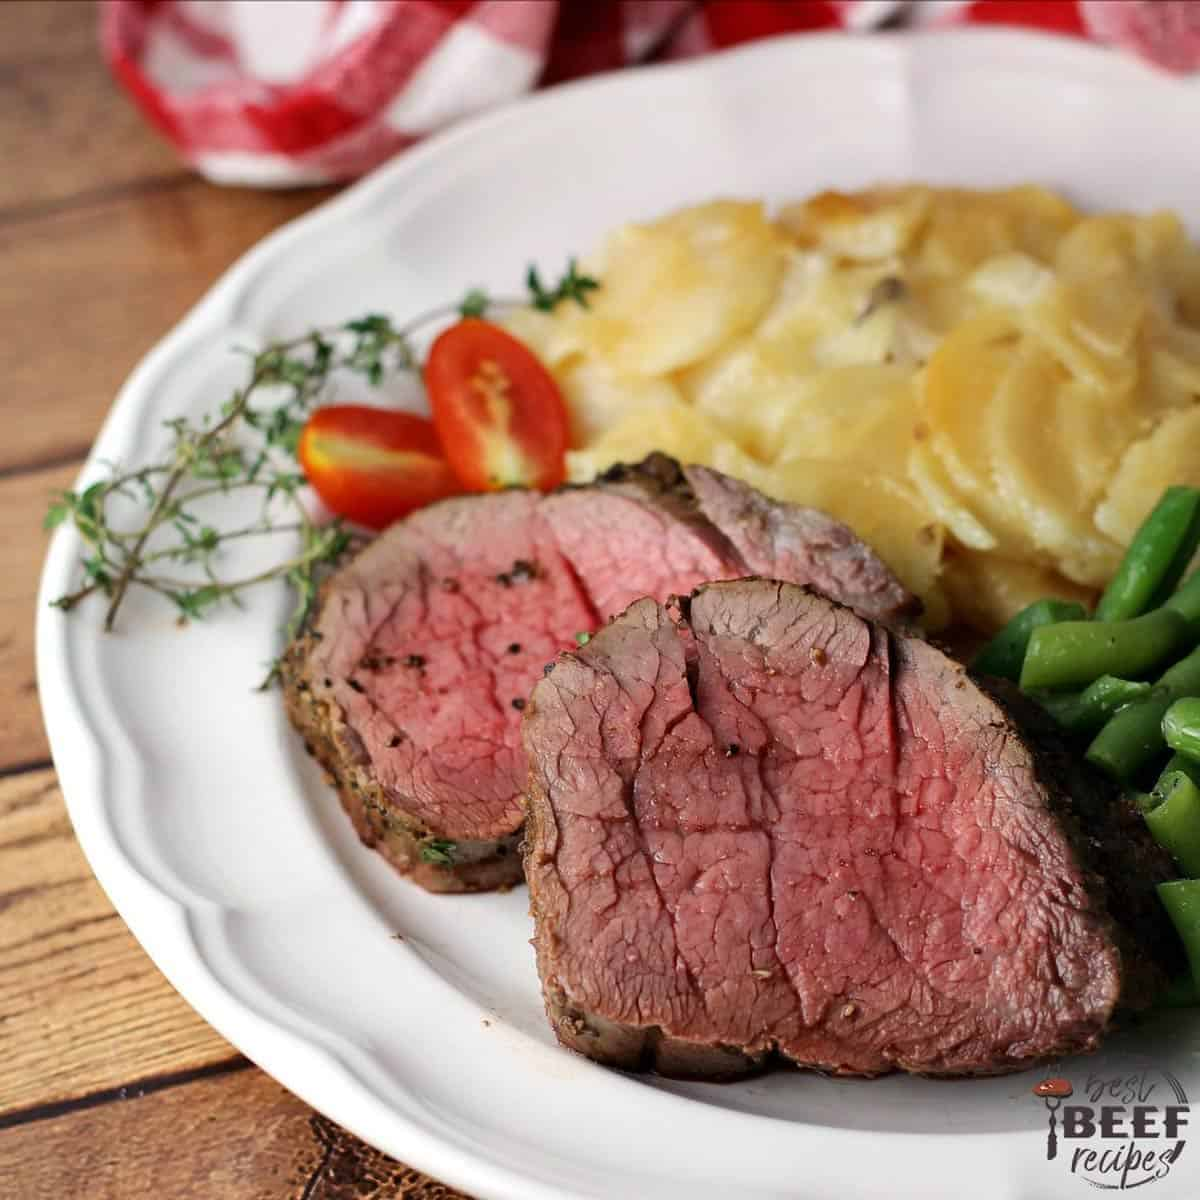 Two slices of whole beef tenderloin next to potatoes and green beans on a plate